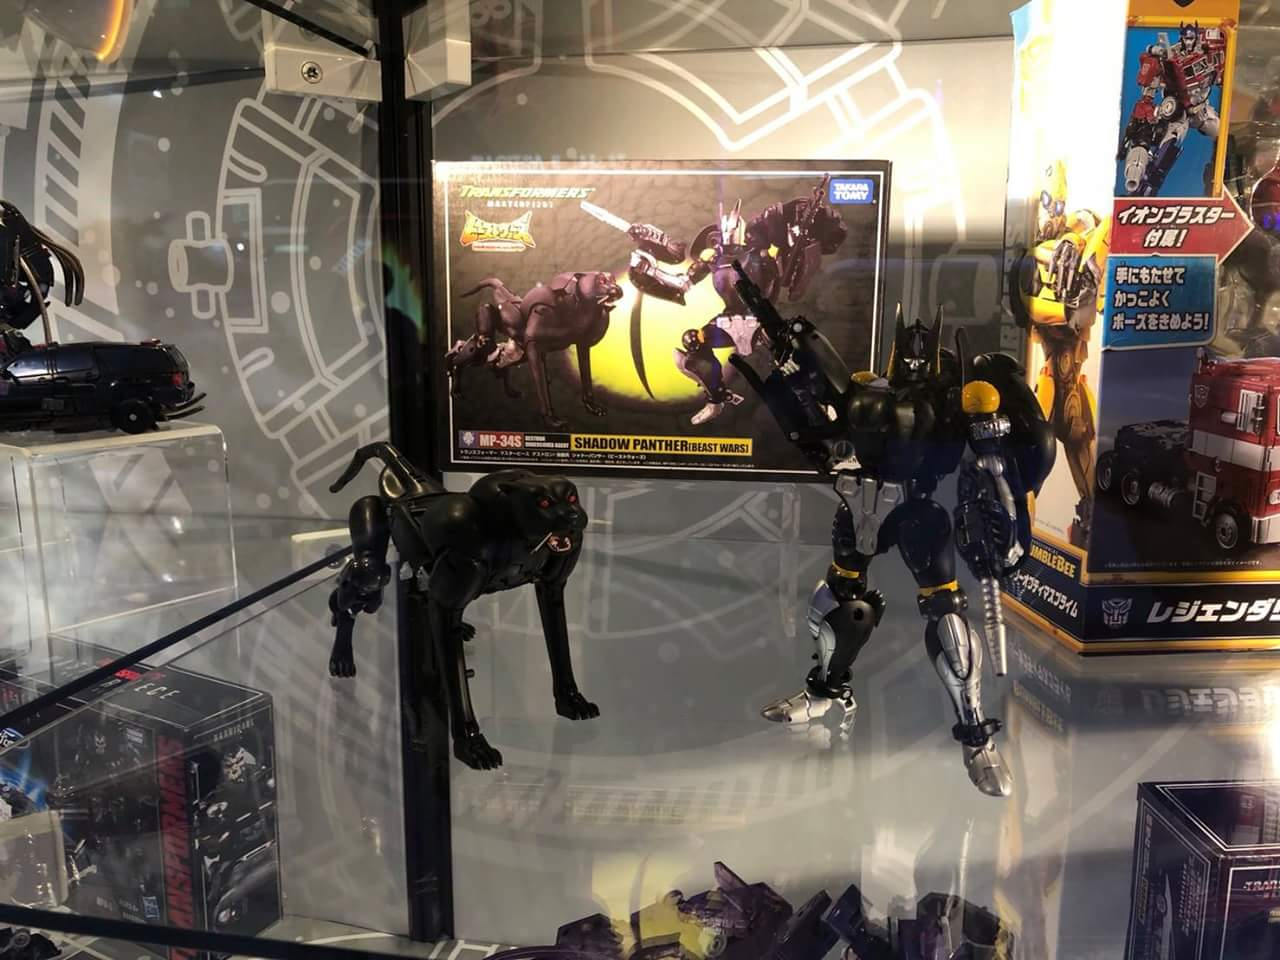 [Masterpiece] MP-34 Cheetor et MP-34S Shadow Panther (Beast Wars) - Page 3 CpWU7F2V_o